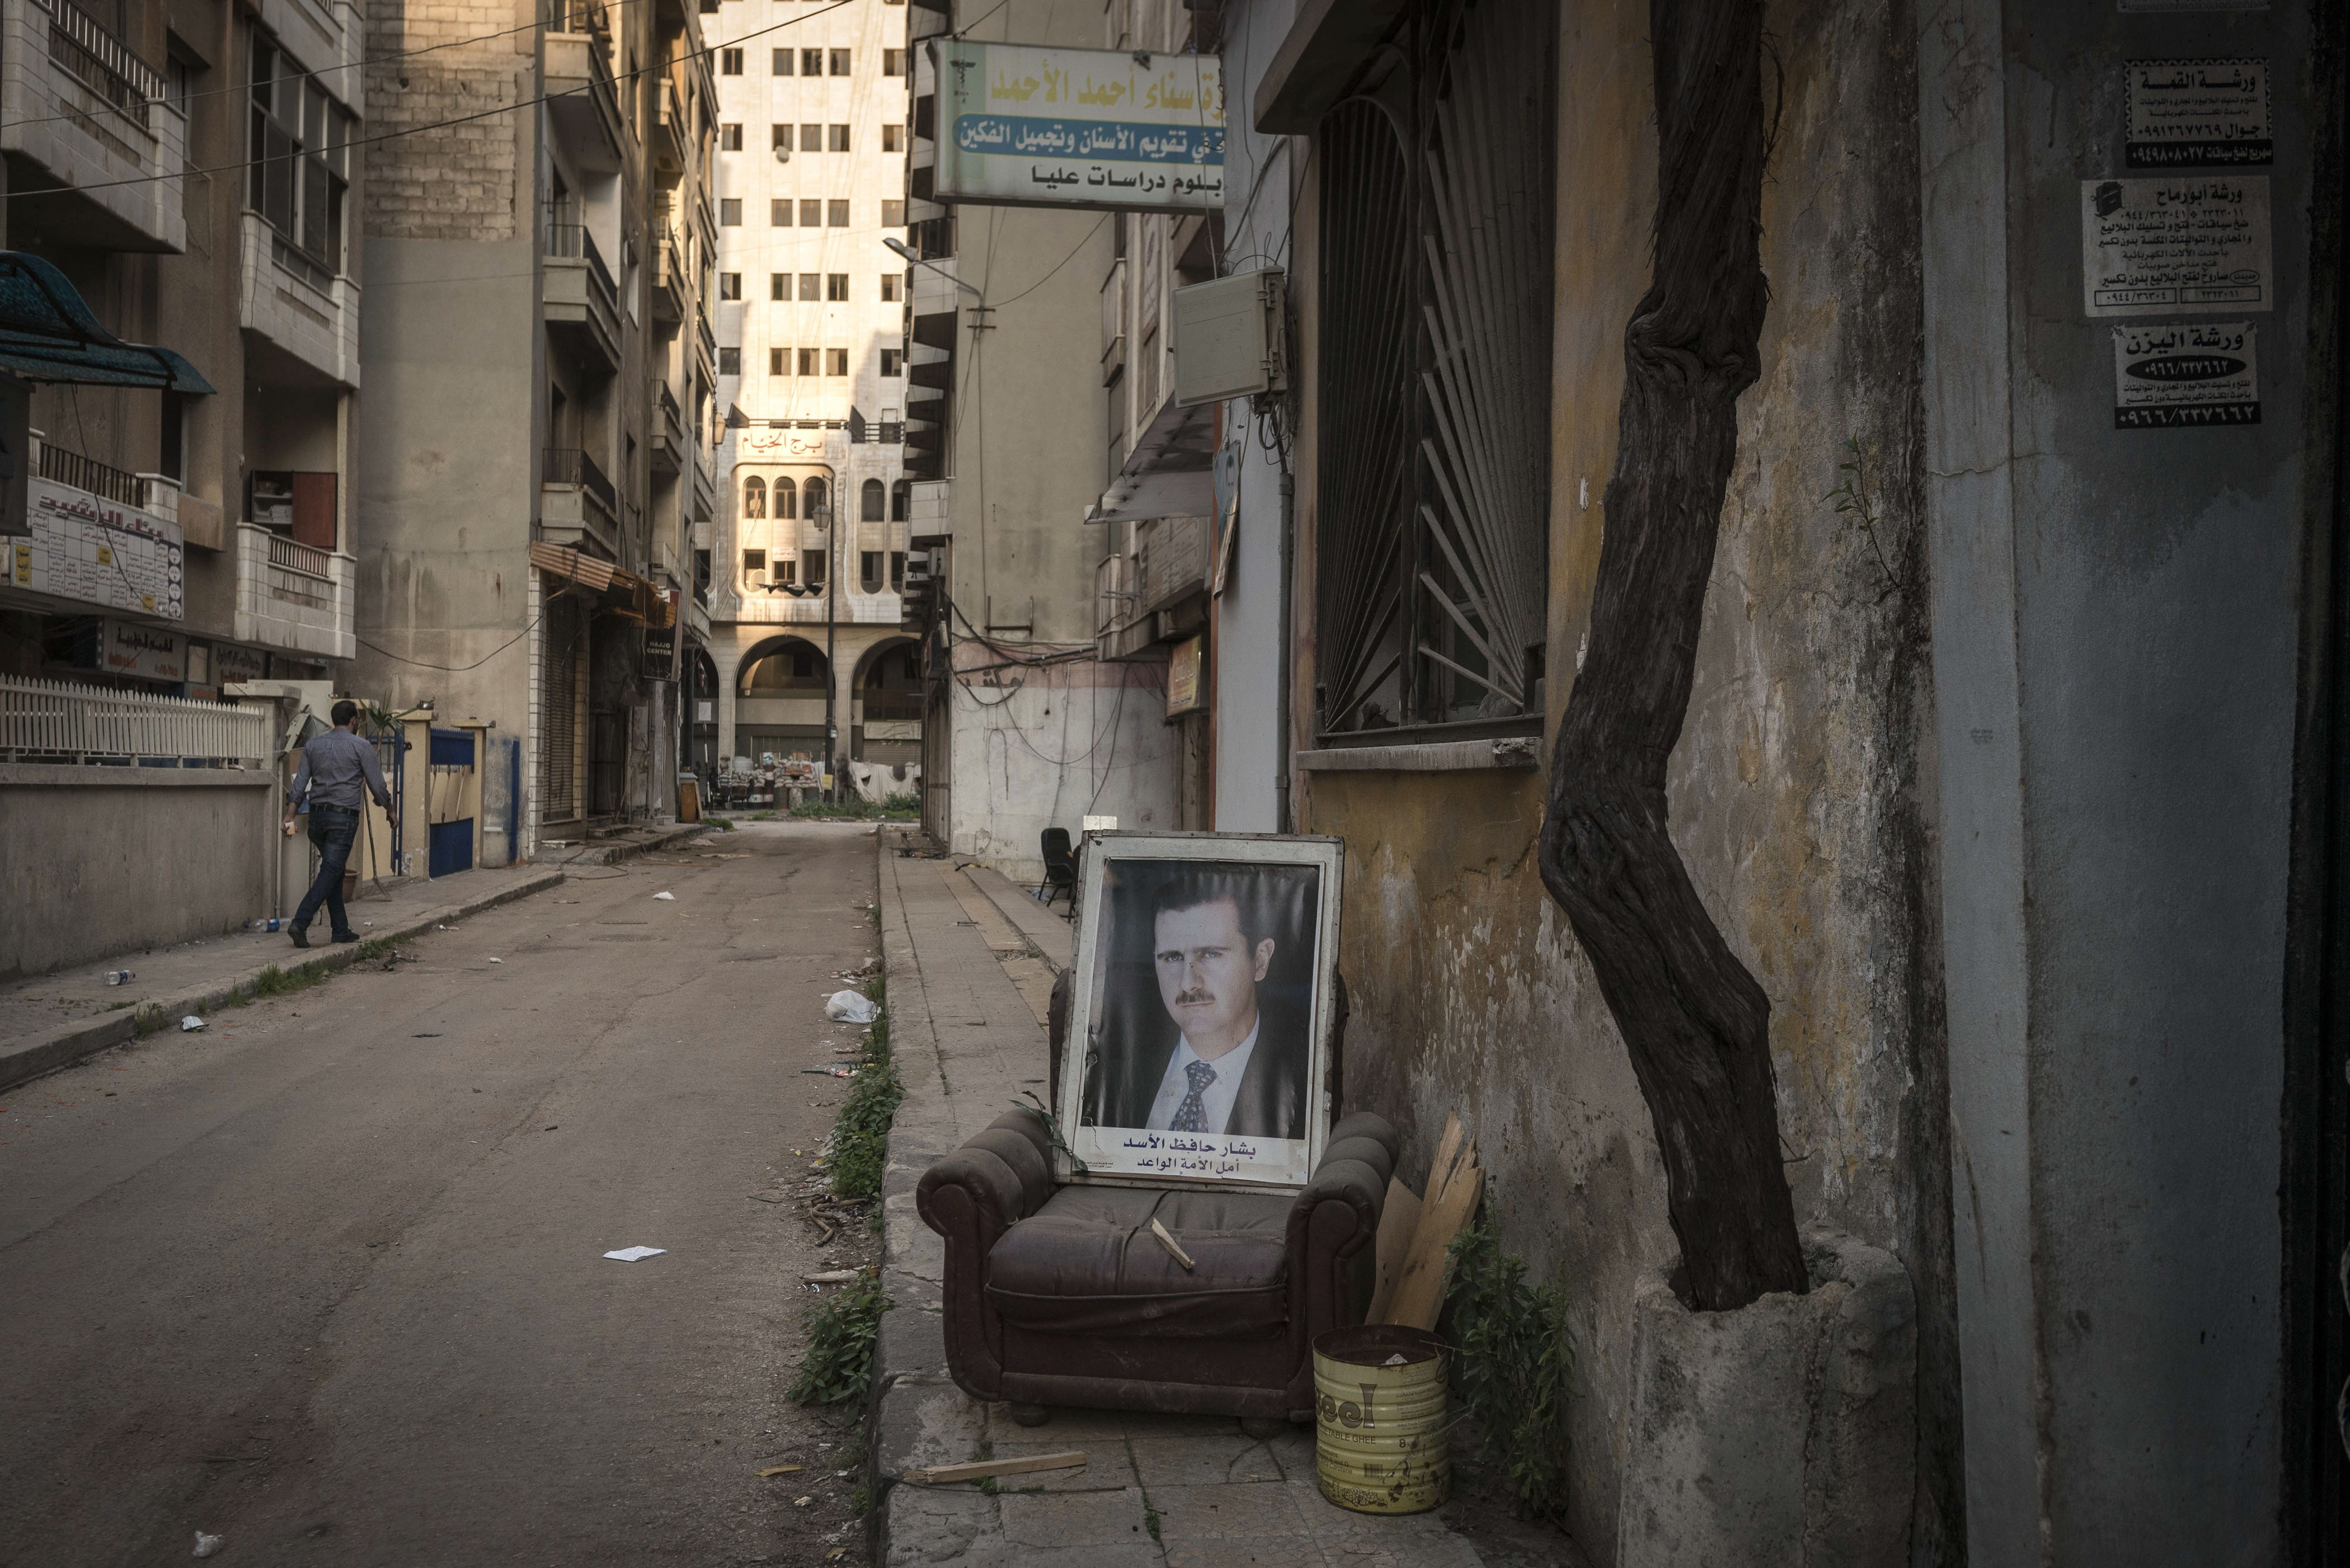 A portrait of President Assad on a street in Homs, Syria, March 23, 2014.